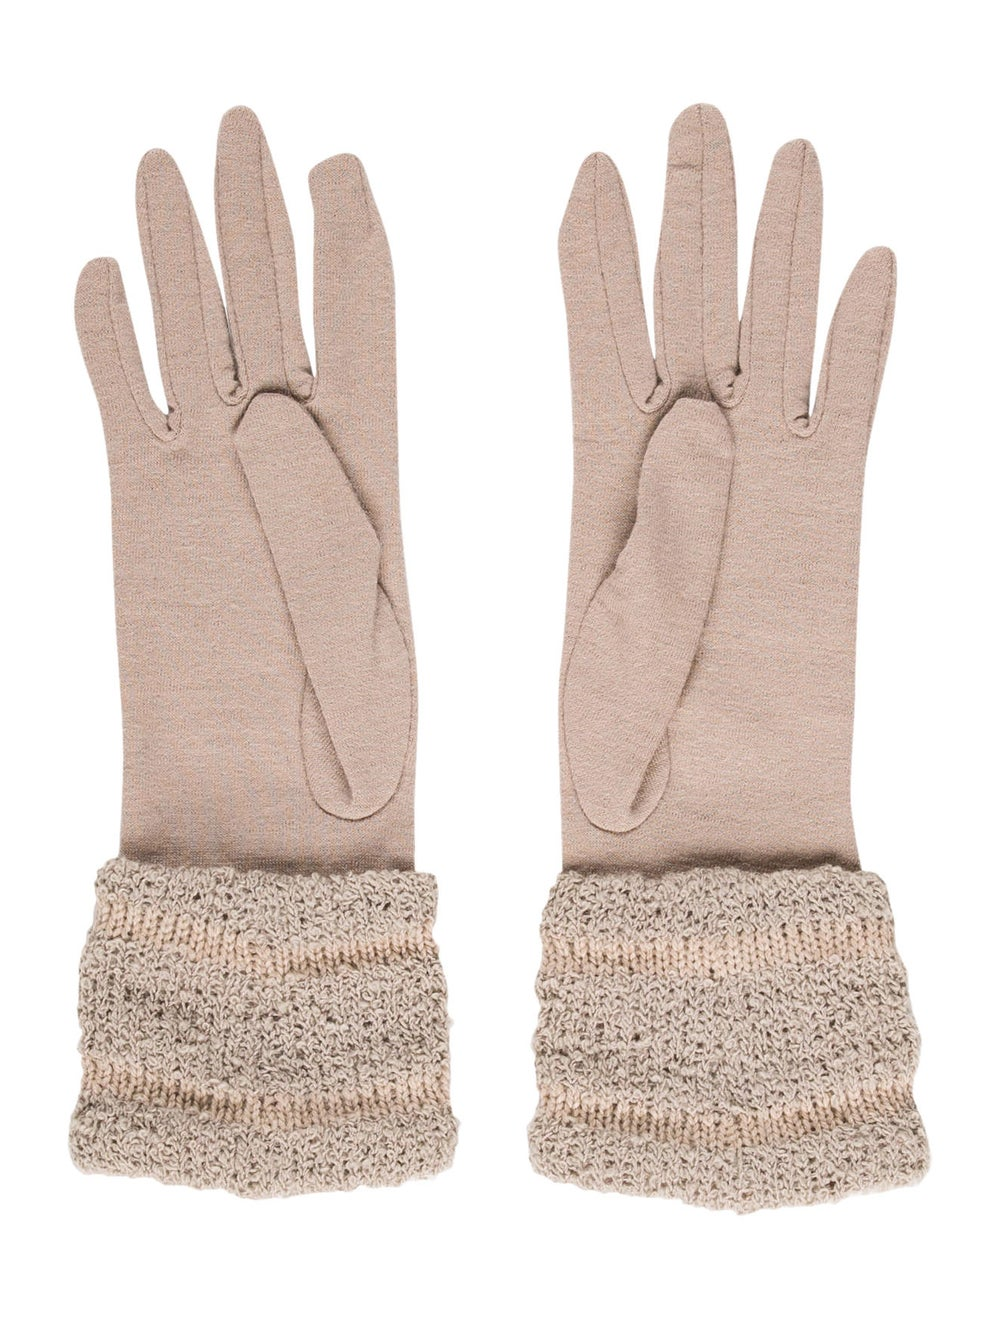 Patricia Underwood Wool Woven Gloves Tan - image 2